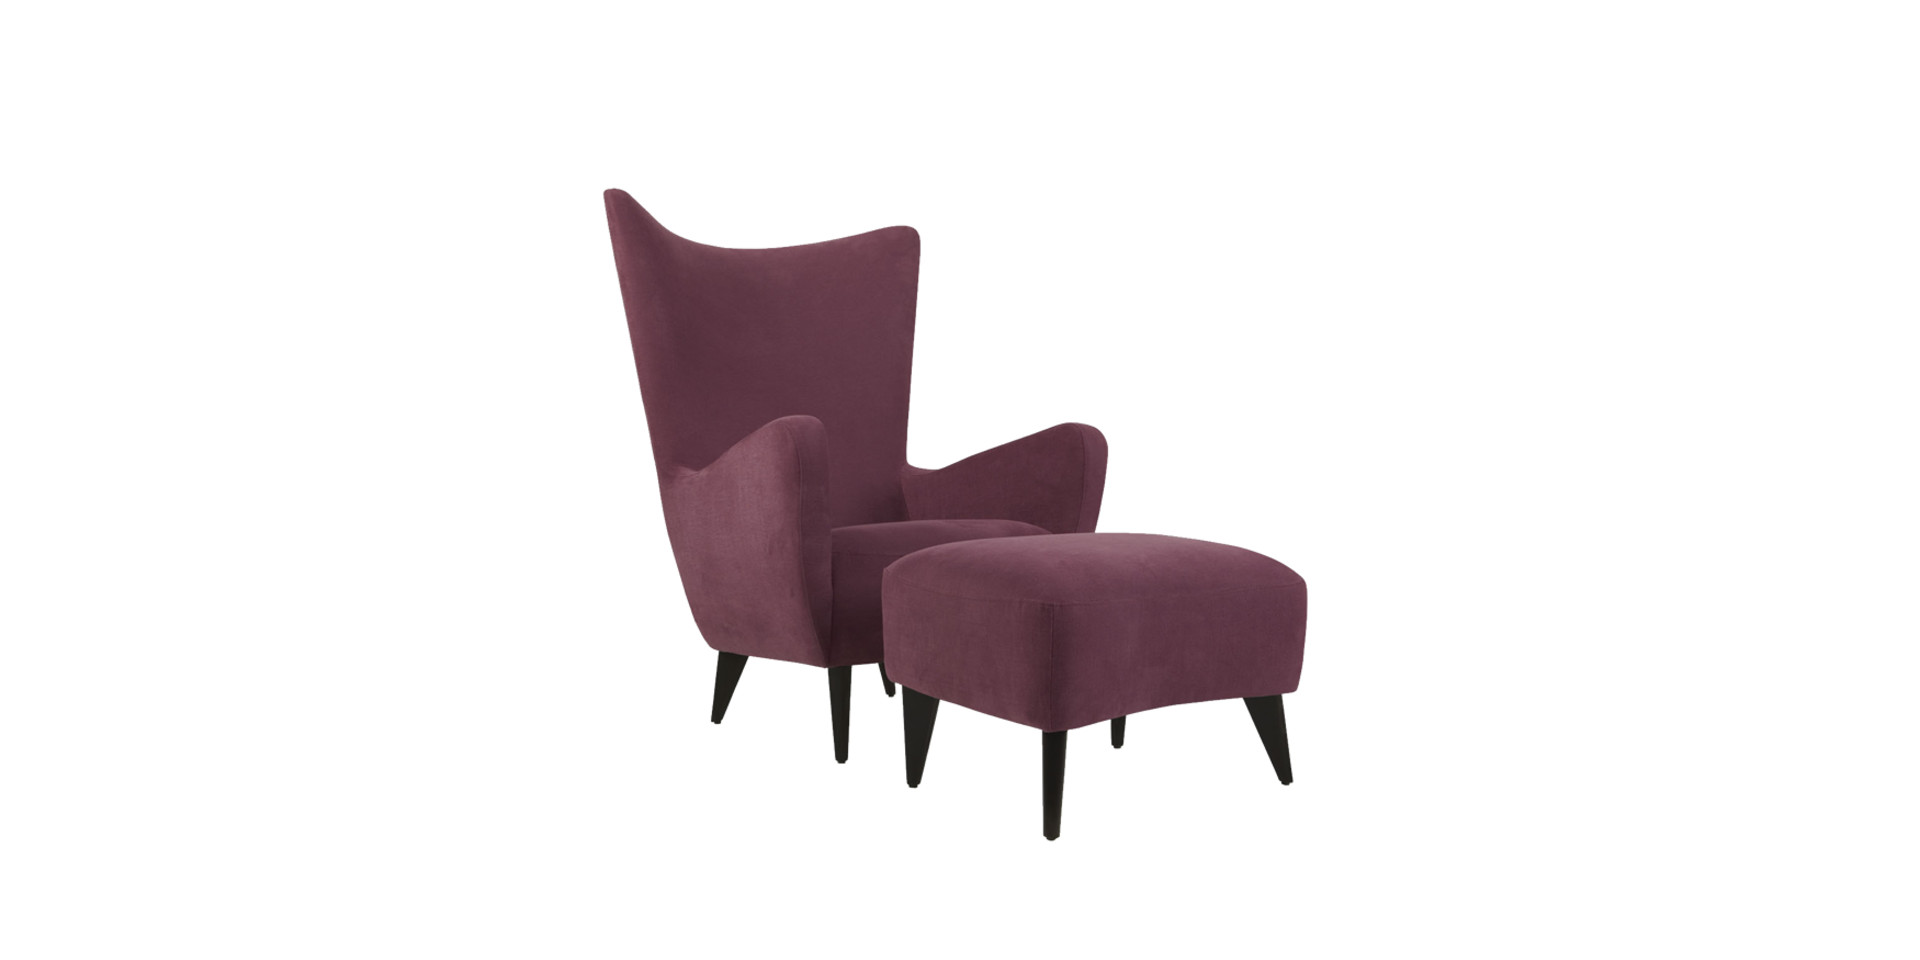 sits-kato-fauteuil-pouf-armchair_footstool_caleido1524_aubergine_7